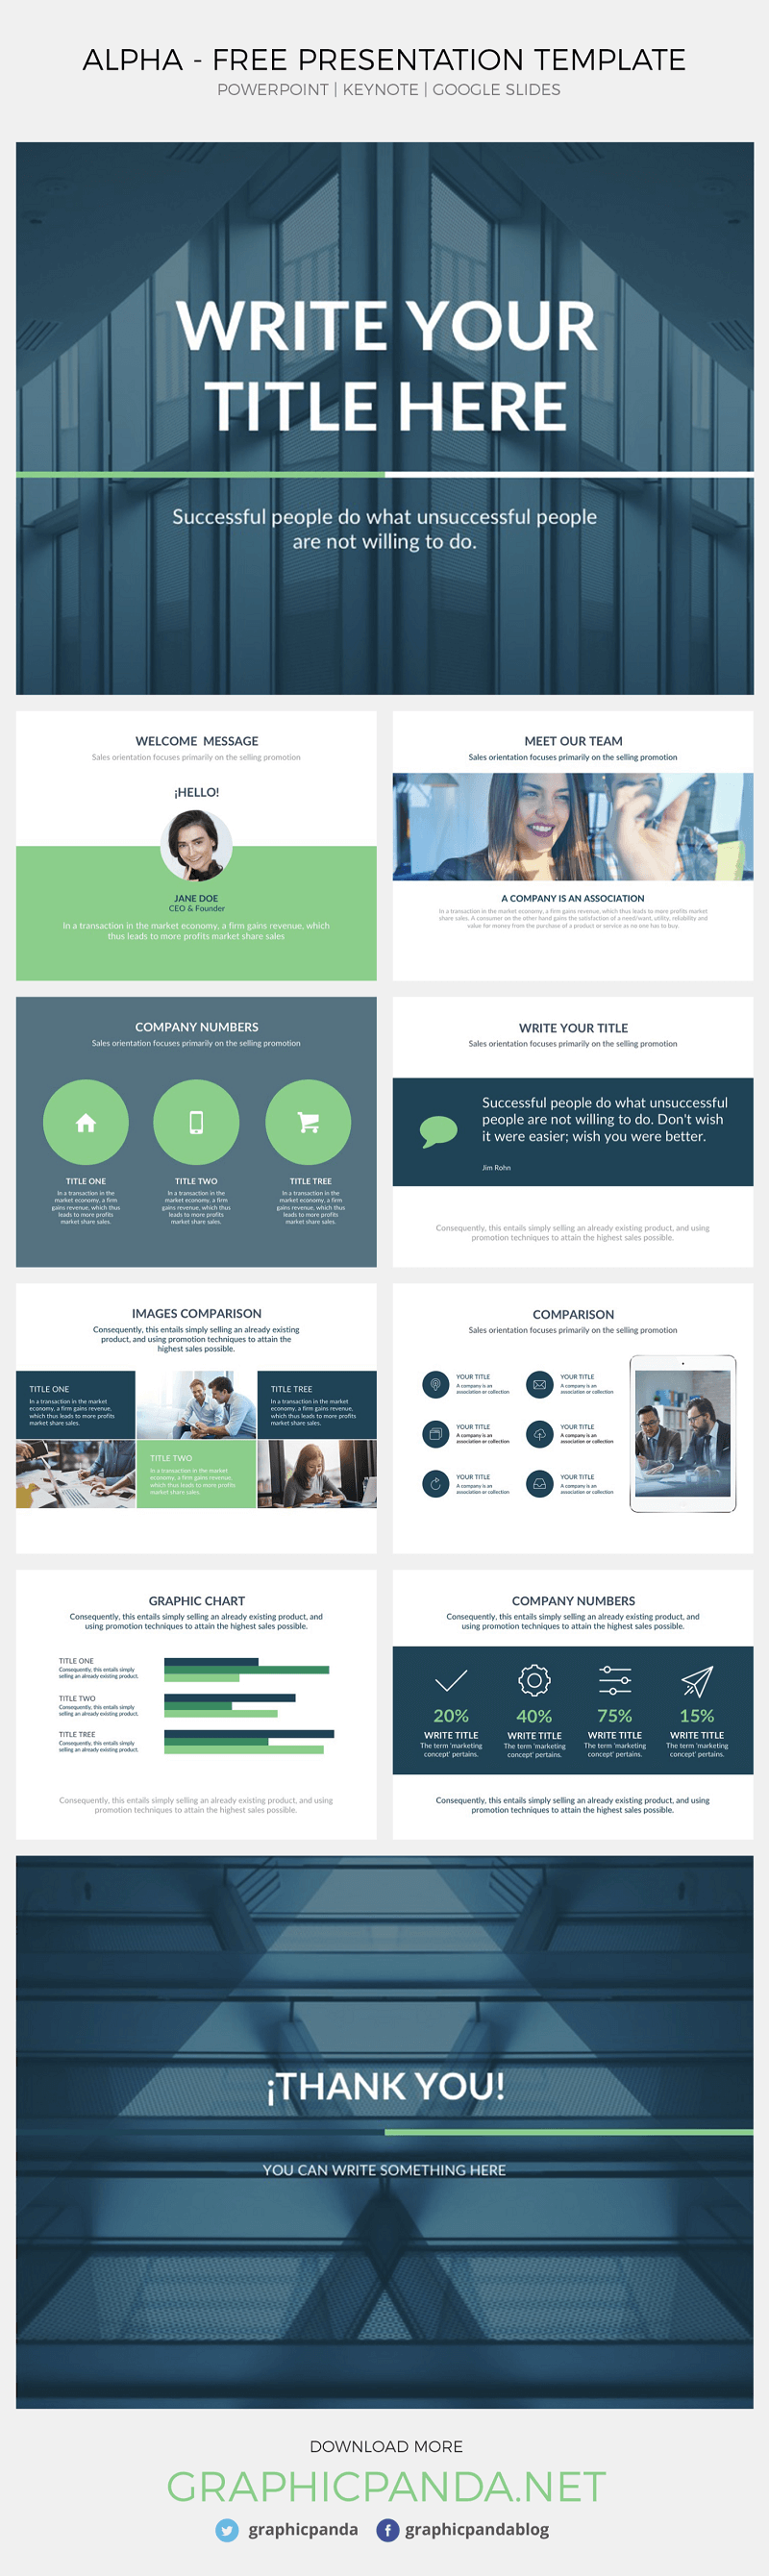 ALPHA-Free Presentation Template